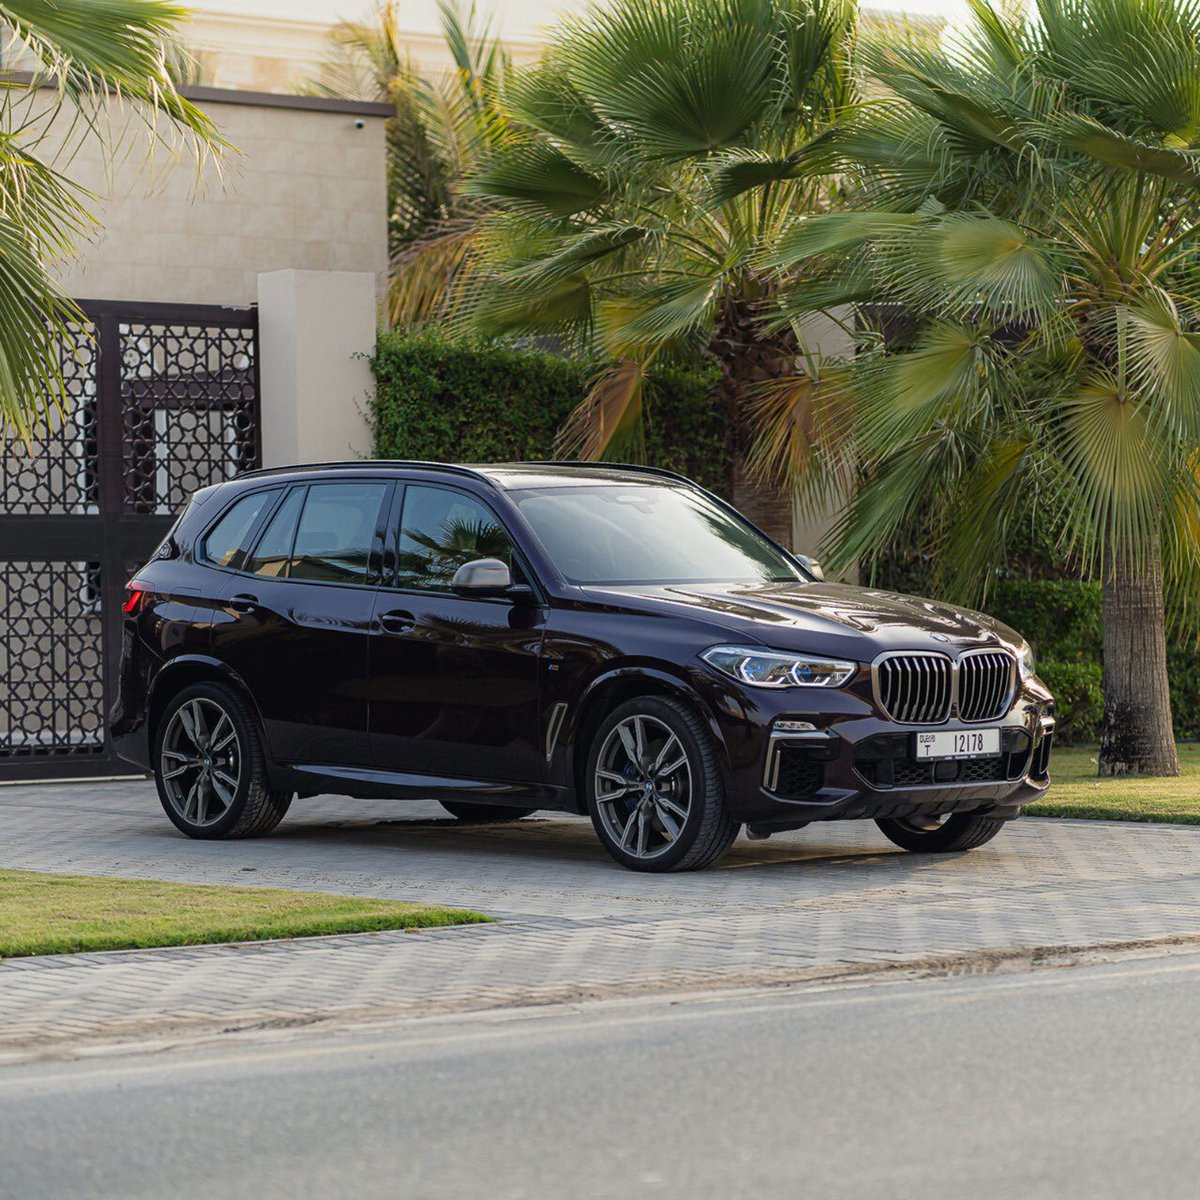 There's no end to exploration with the X5.  #BMWX5 #BMWAGMC https://t.co/nfiMVGQLy5